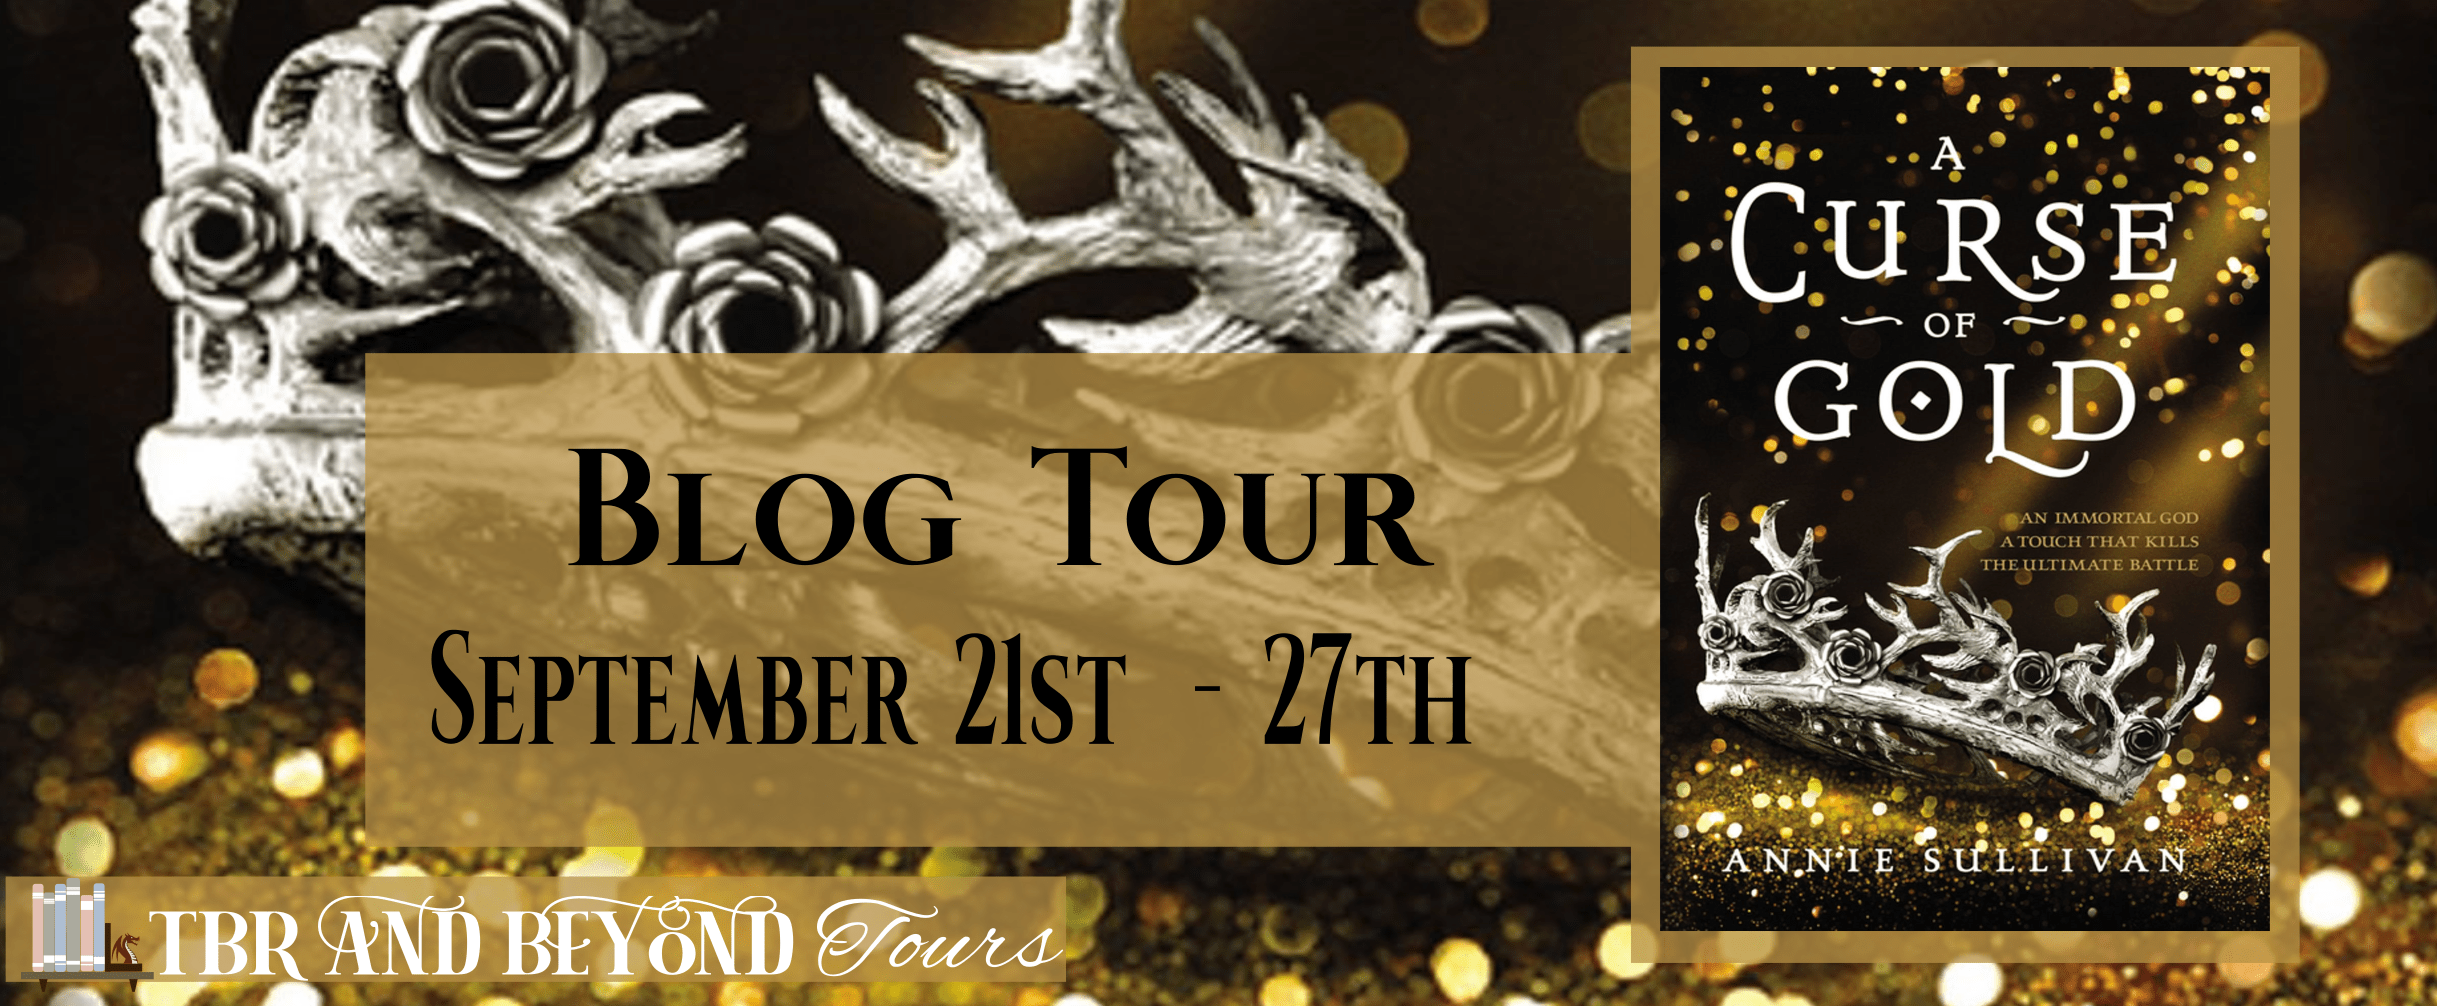 Blog Tour: A Curse of Gold by Annie Sullivan (Quiz + Giveaway!)